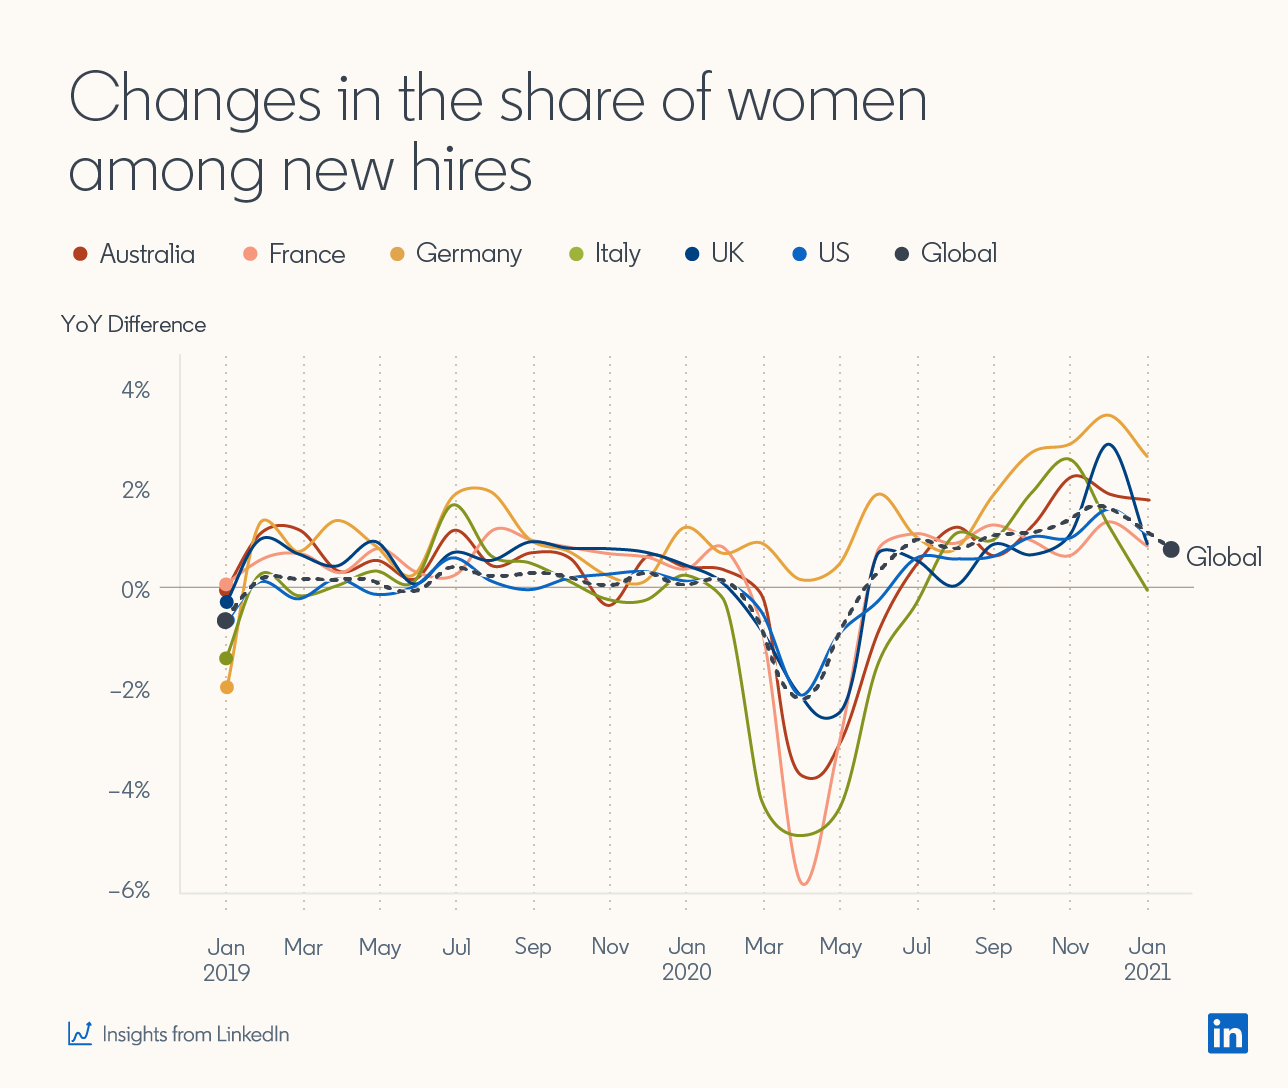 Line graph showing:  Changes in the share of women among new hires in Australia, France, Germany, Italy, UK, US, and global.  Graph shows significant dip in all geographic areas (except Germany where it remained steadier) between March and May 2020, with steady rise after that until November 2020